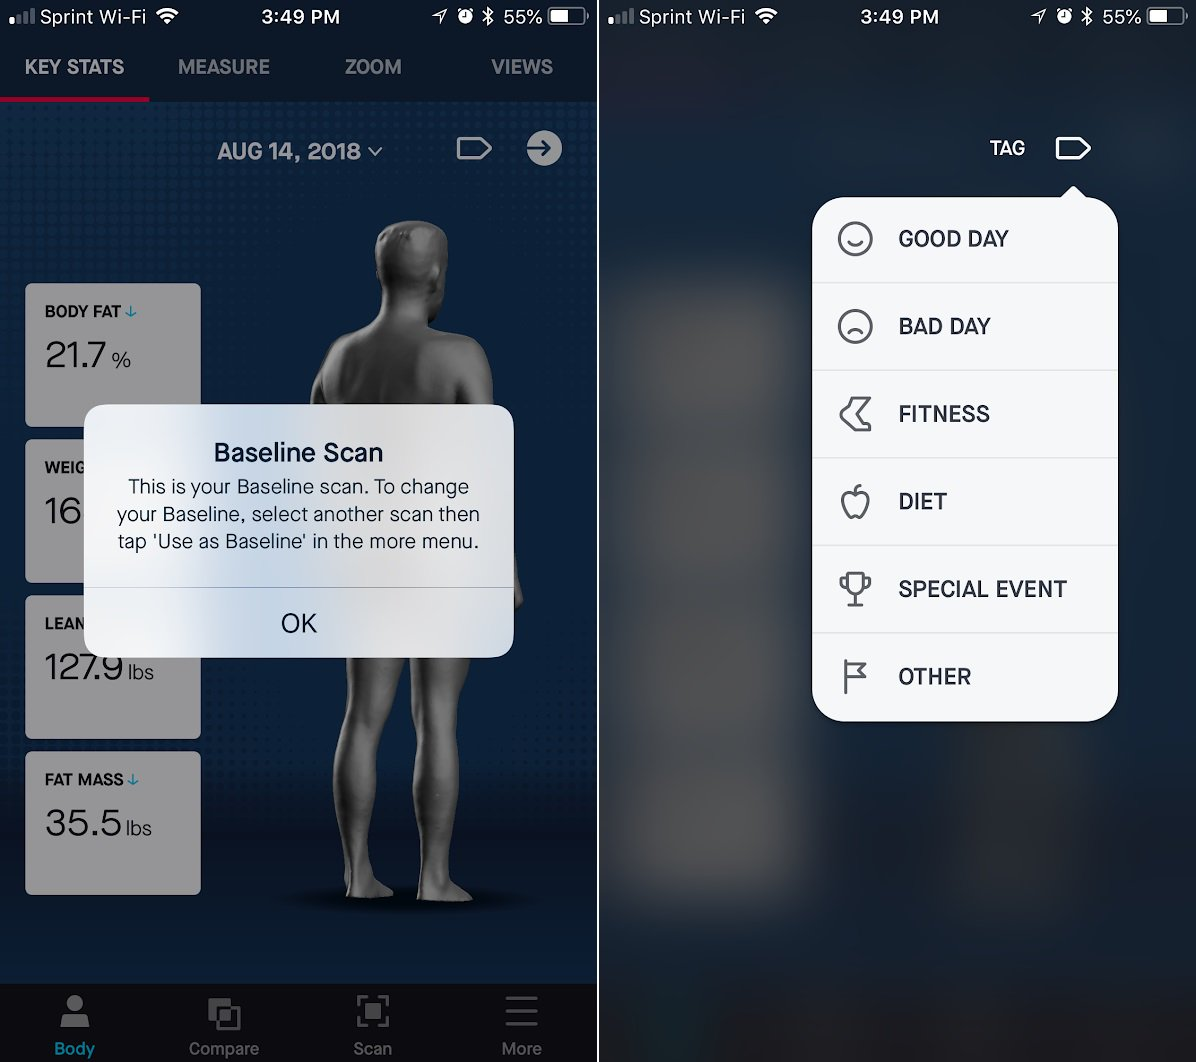 Cnet smart home cnetsmarthome twitter scrutinize on your phone httpscnet newsnaked labs body scanner smart mirror scale cnet smart home via cnetpicittercyimr68xbv ccuart Image collections